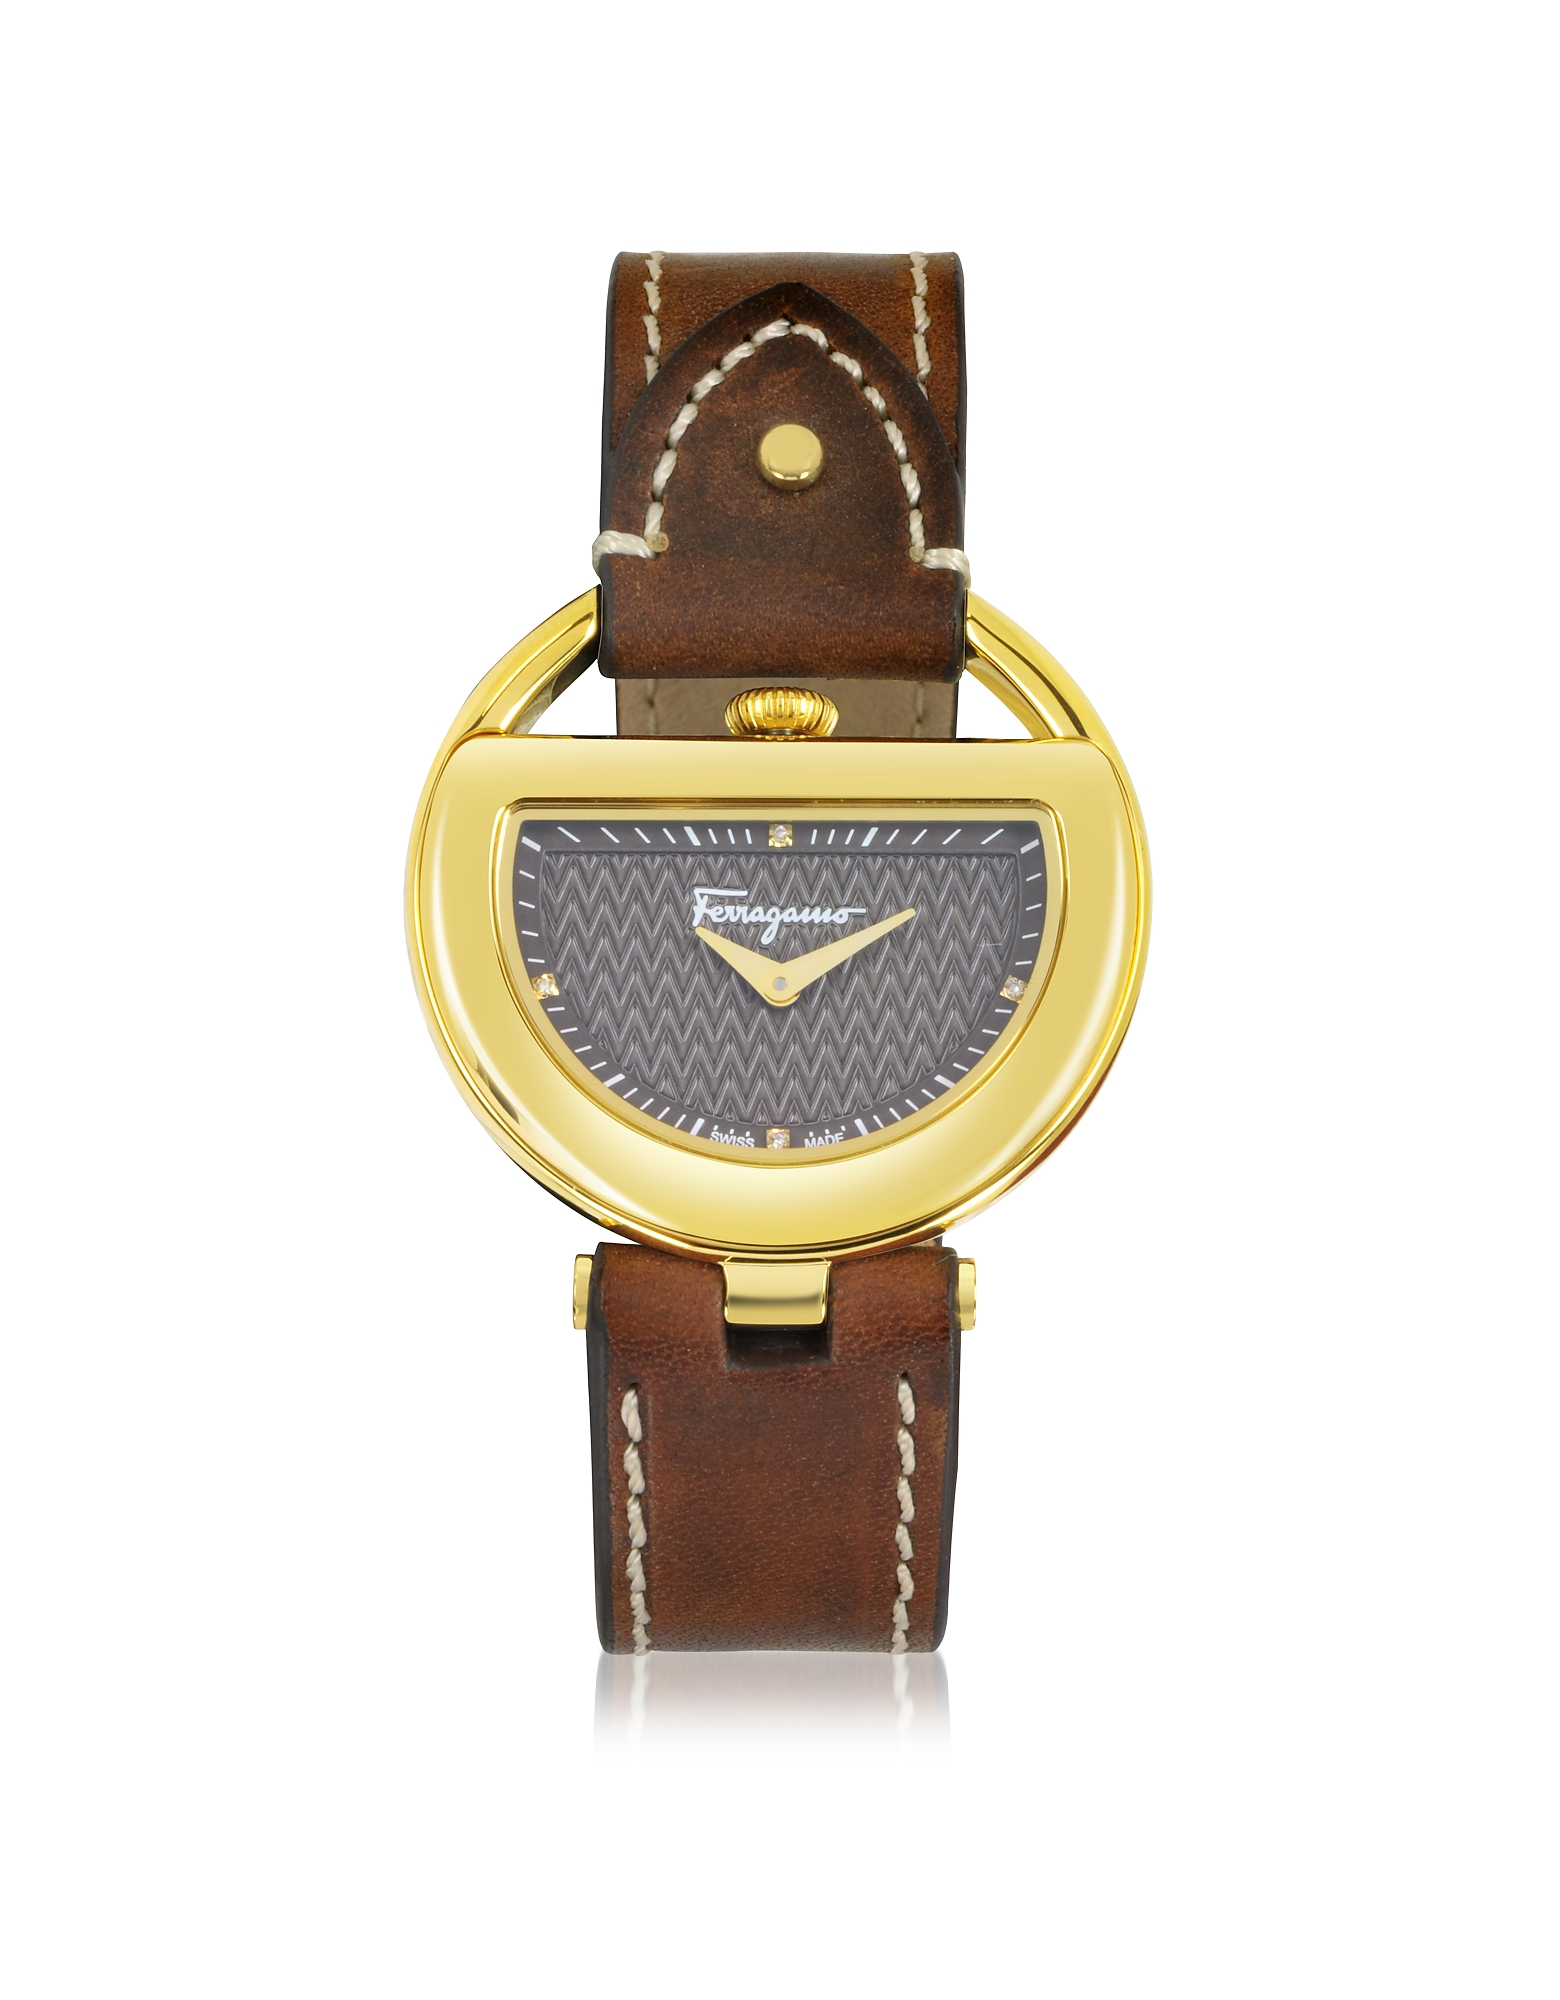 Salvatore Ferragamo Designer Women's Watches, Buckle Collection Gold IP Stainless Steel Case and Brown Leather Strap Women's Watch